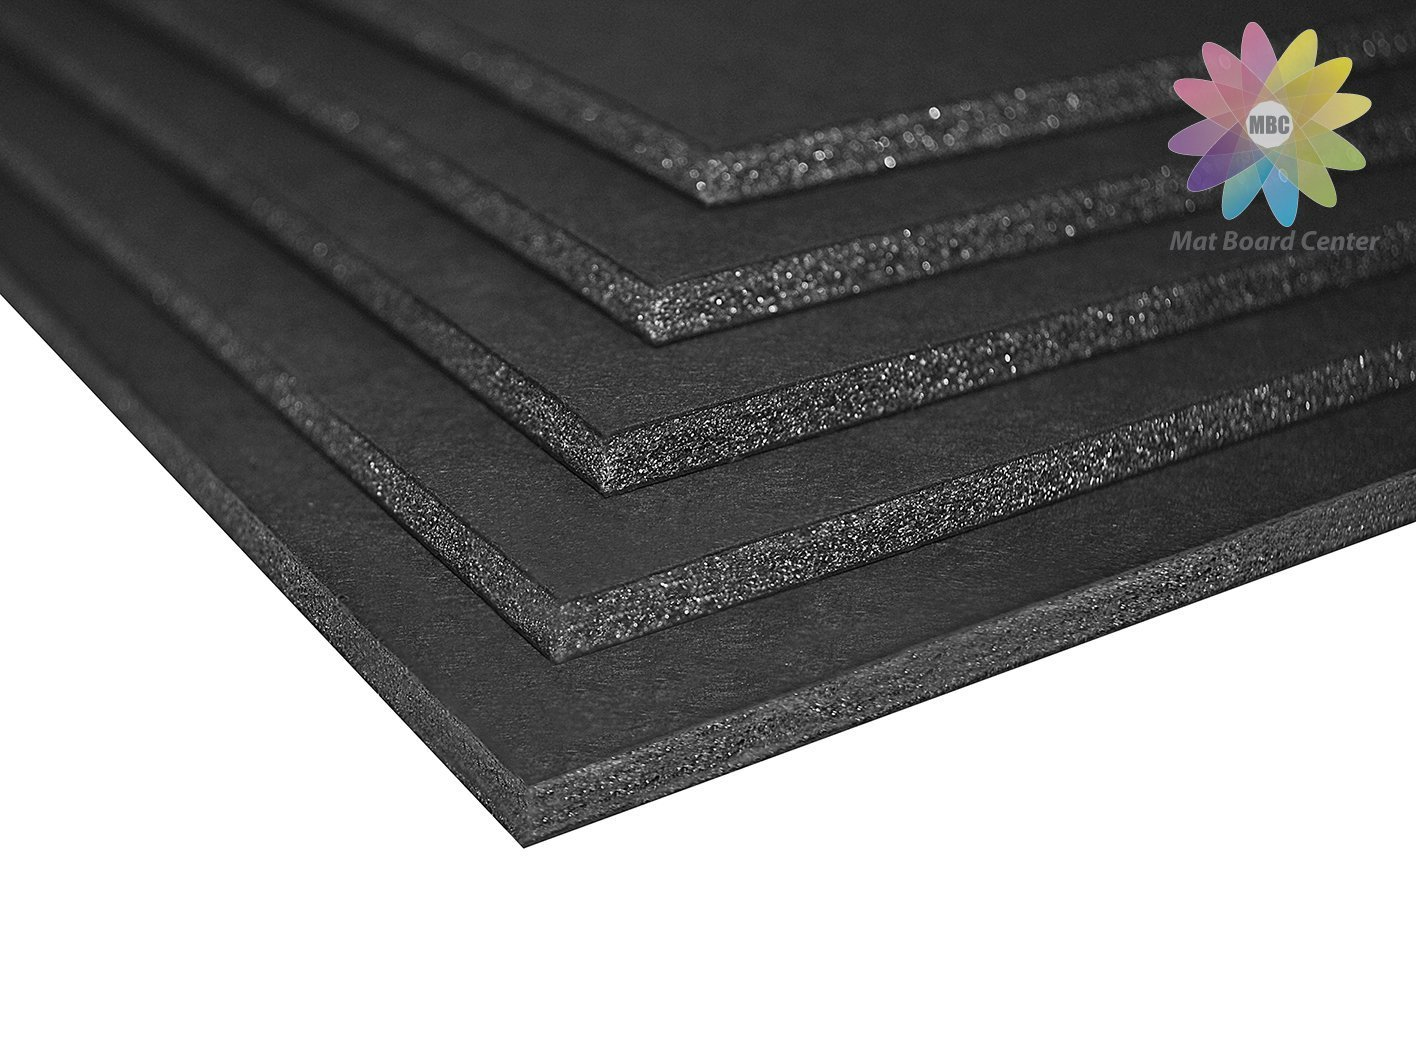 Mat Board Center, Pack of 25 Foam Core Backing Boards 3/16'' (16x20, Black) by MBC MAT BOARD CENTER (Image #2)